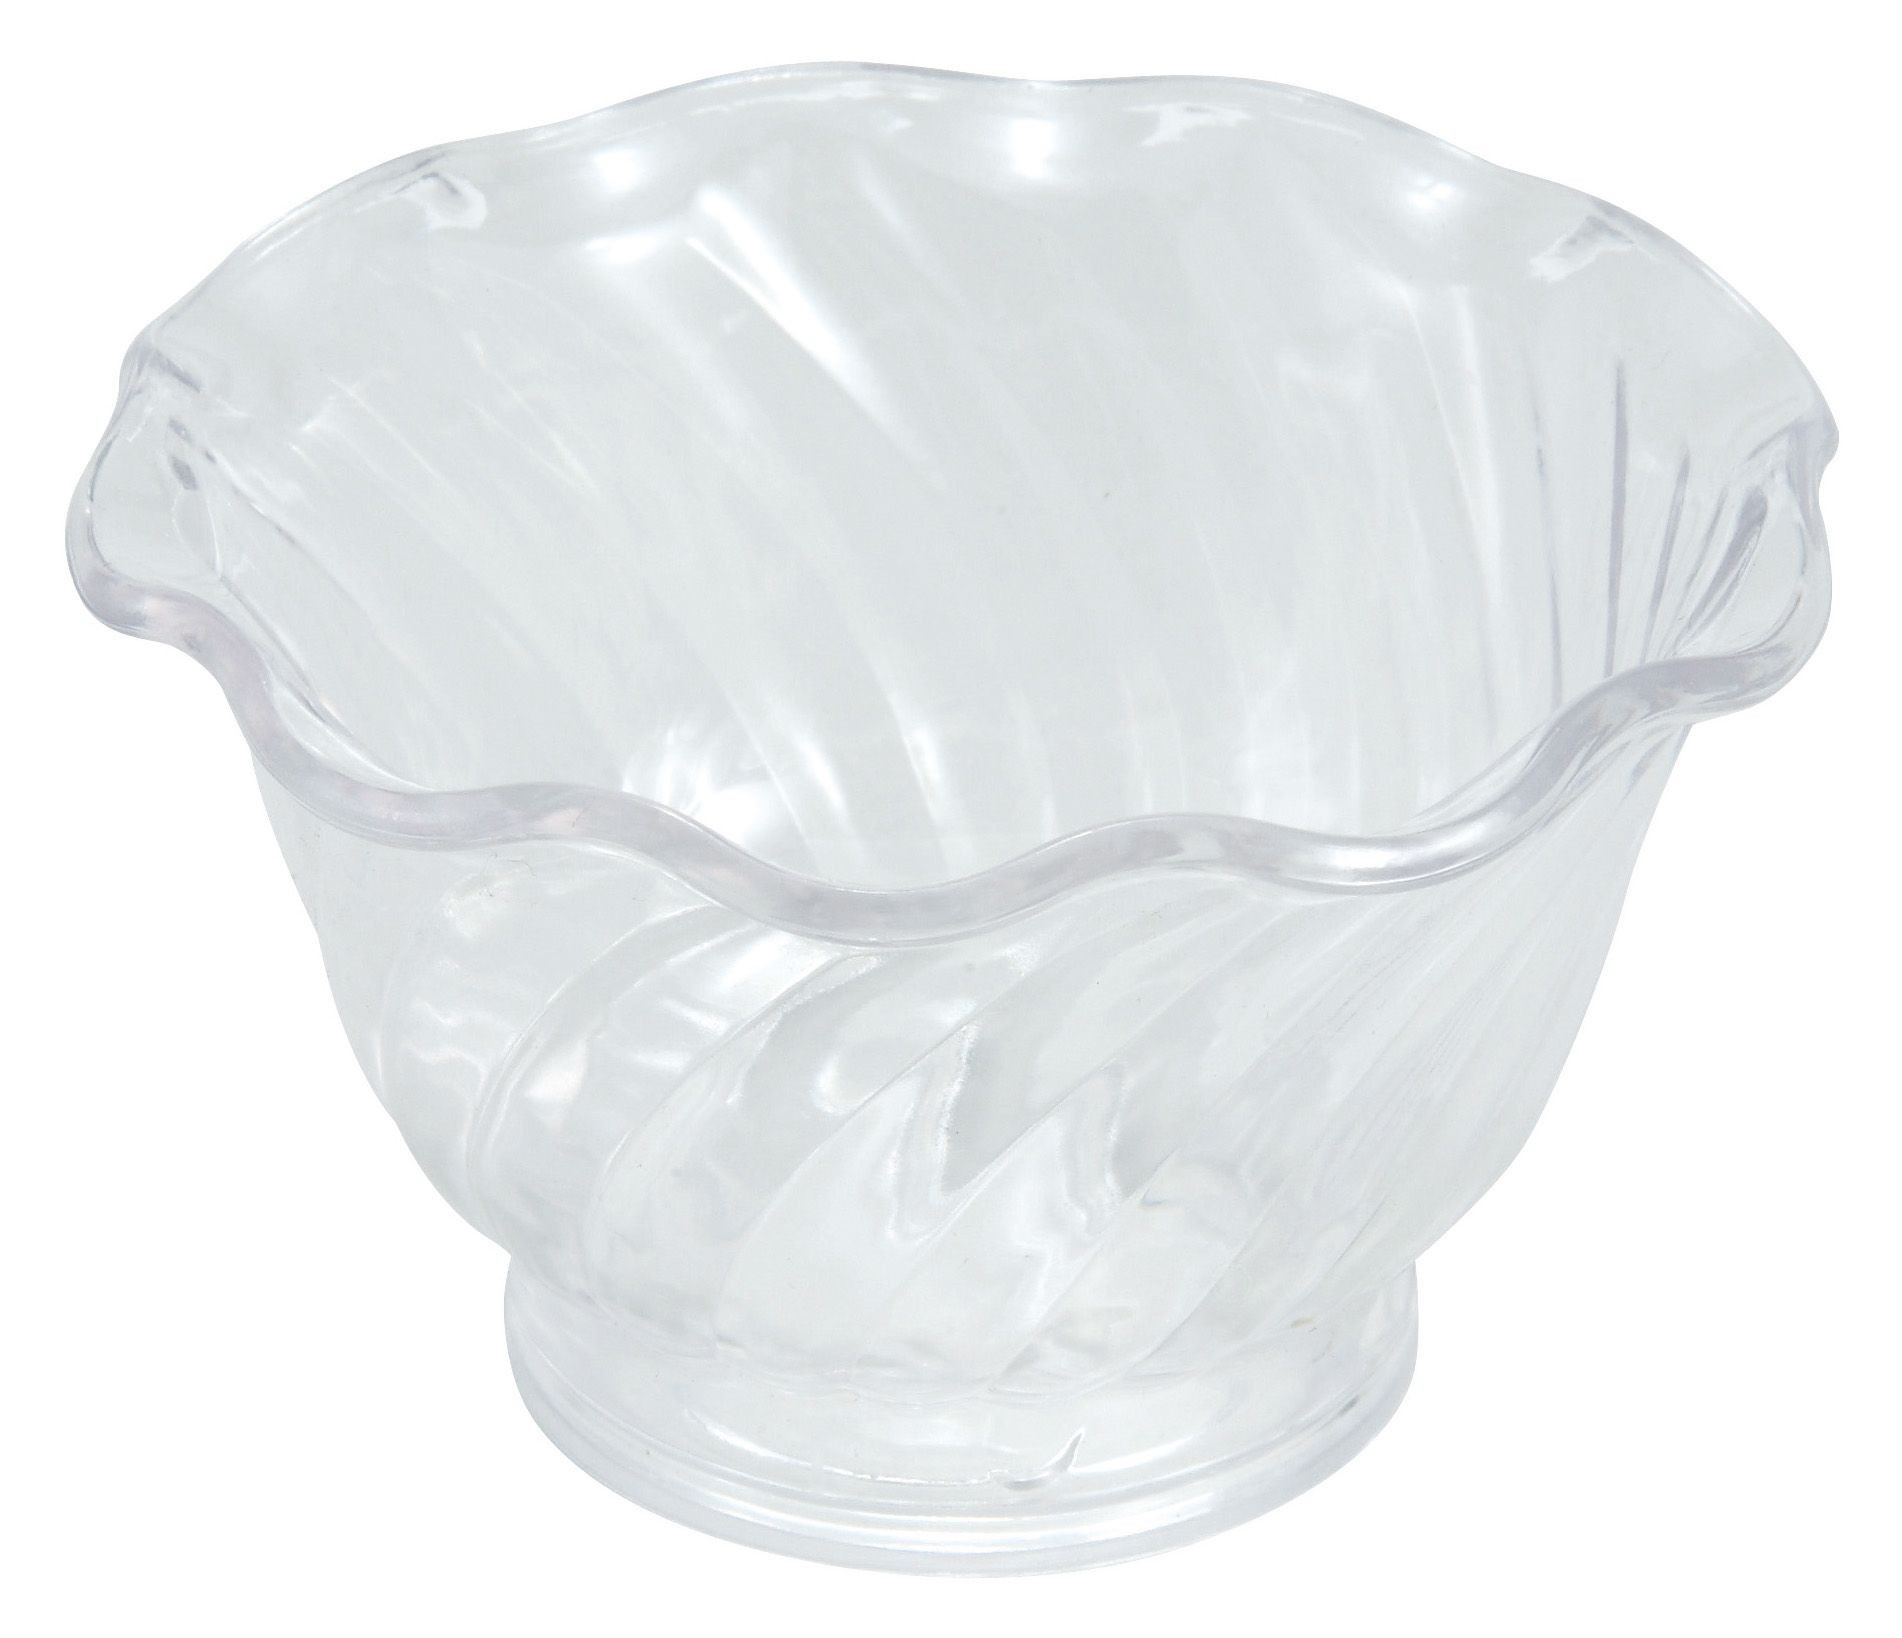 Winco ICC-5C Clear Plastic 5 oz. Ice Cream/Berry Dish